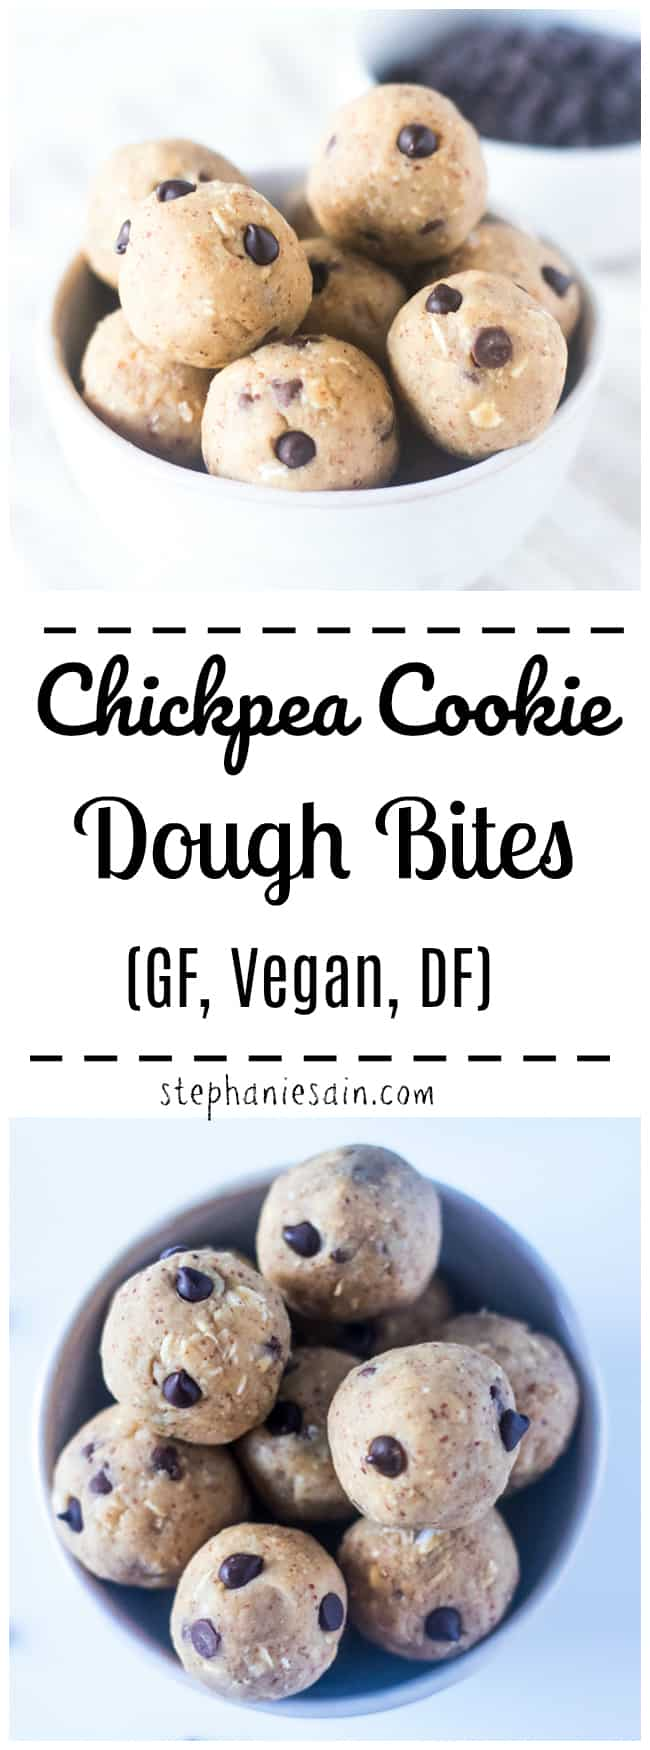 These No Bake Chickpea Cookie Dough Bites are easy to make and perfect when craving a healthy treat. Portable little snacks great for snacking, breakfast or anytime you want a sweet treat. Gluten Free, Vegan, DF, No Added Refined Sugar.